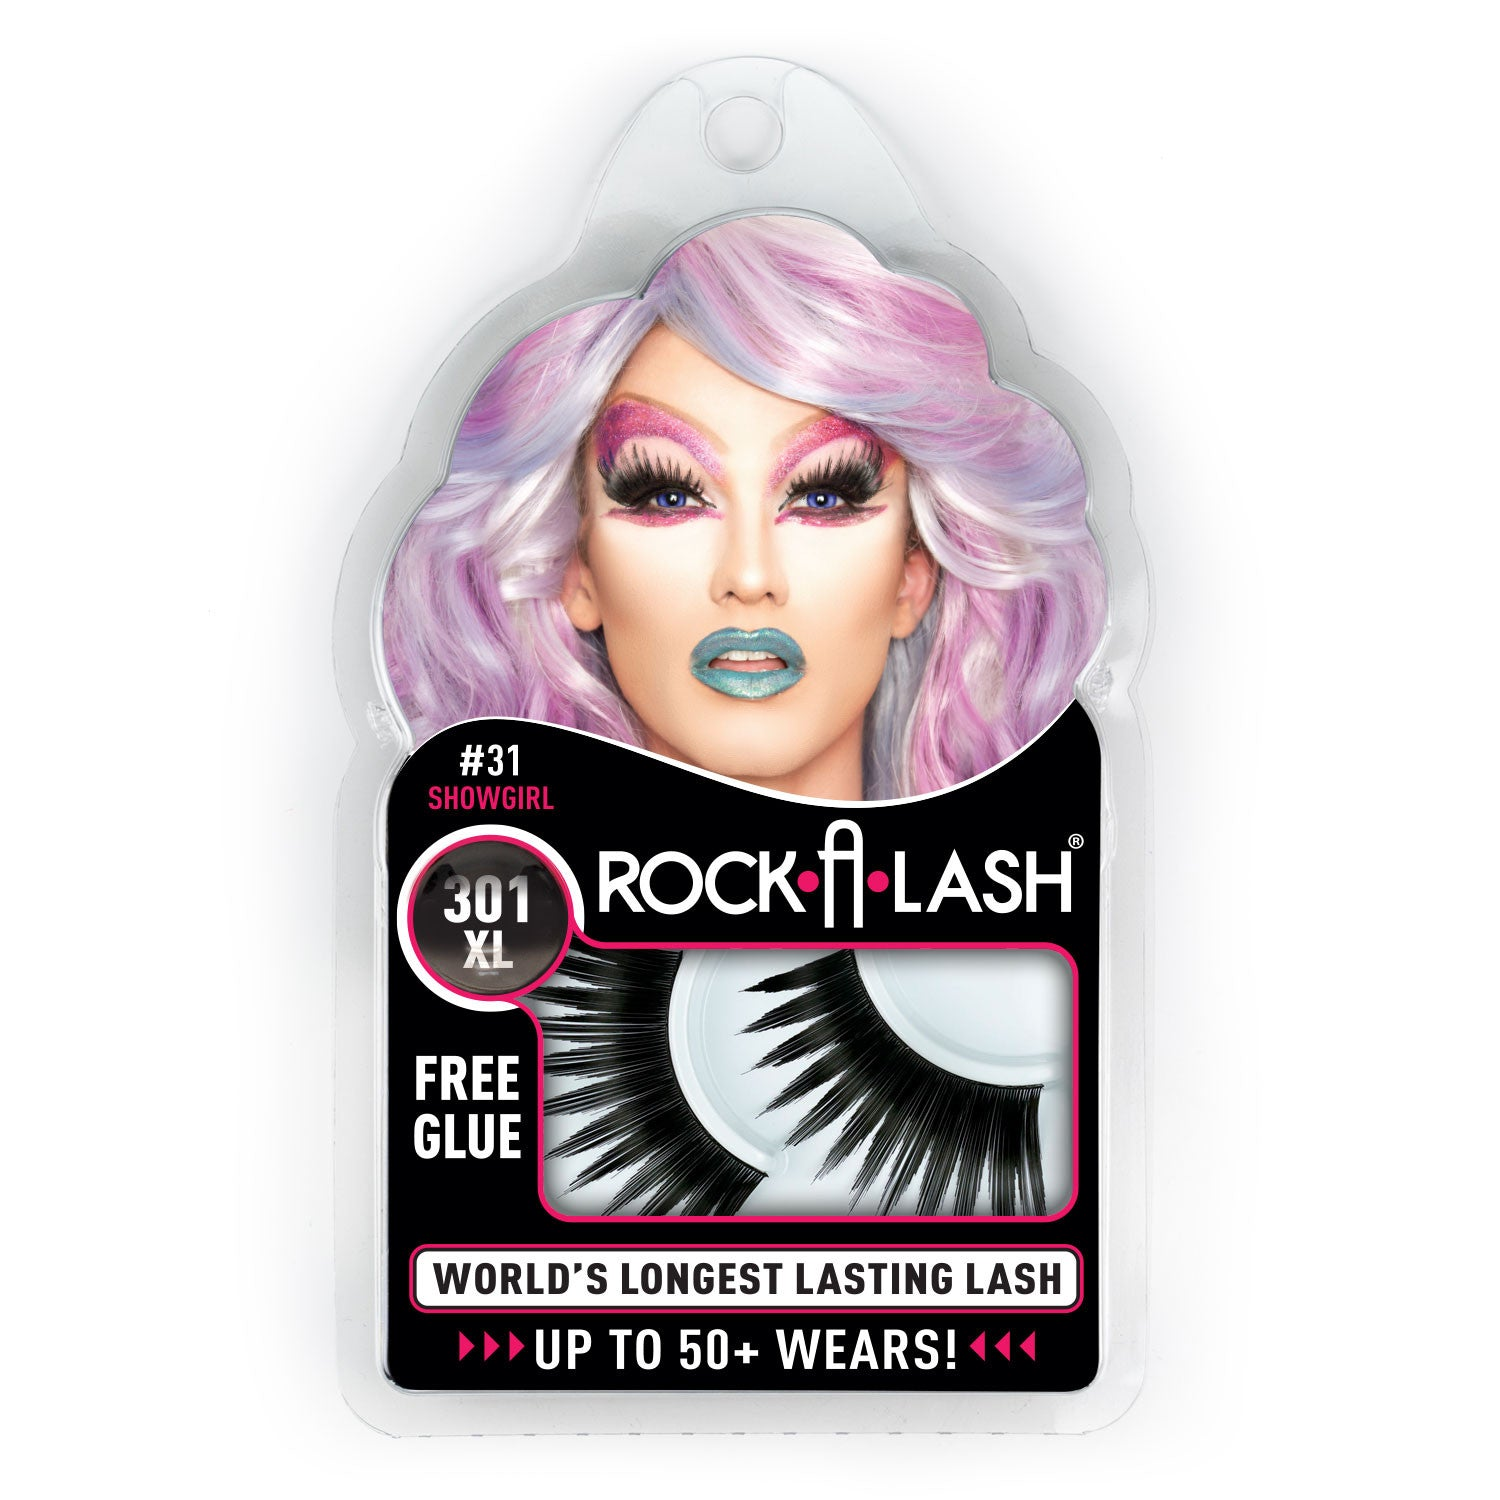 Rock-A-Lash ® <br> #31 - 301-XL™ - ShowGirl